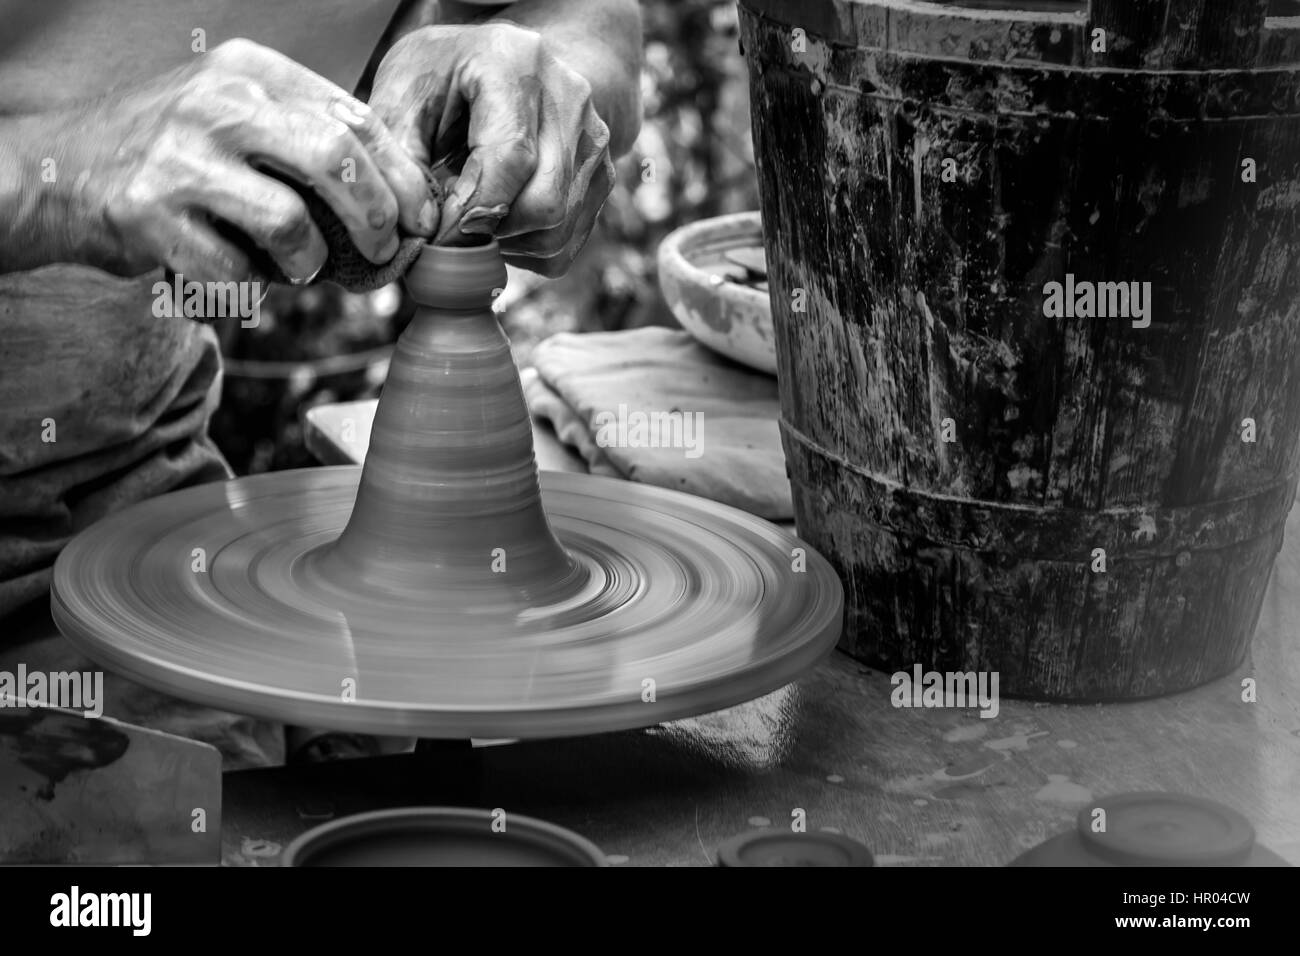 Artisan is working - Black and White - Stock Image